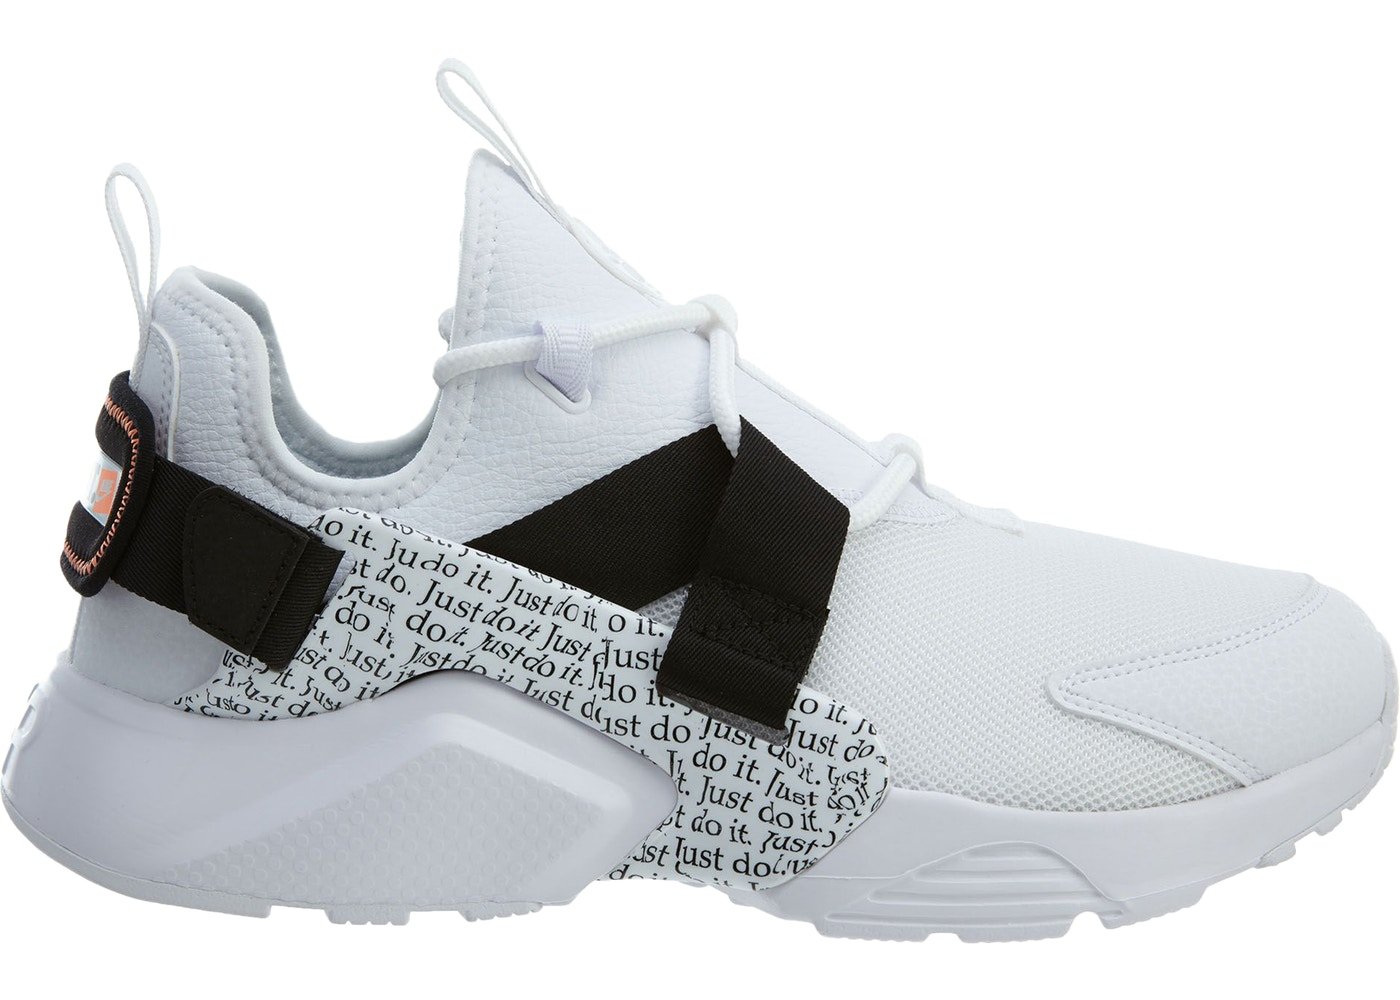 new concept 249d7 cca8e Air Huarache City Low Just Do It Pack White (W) - AO3140-100